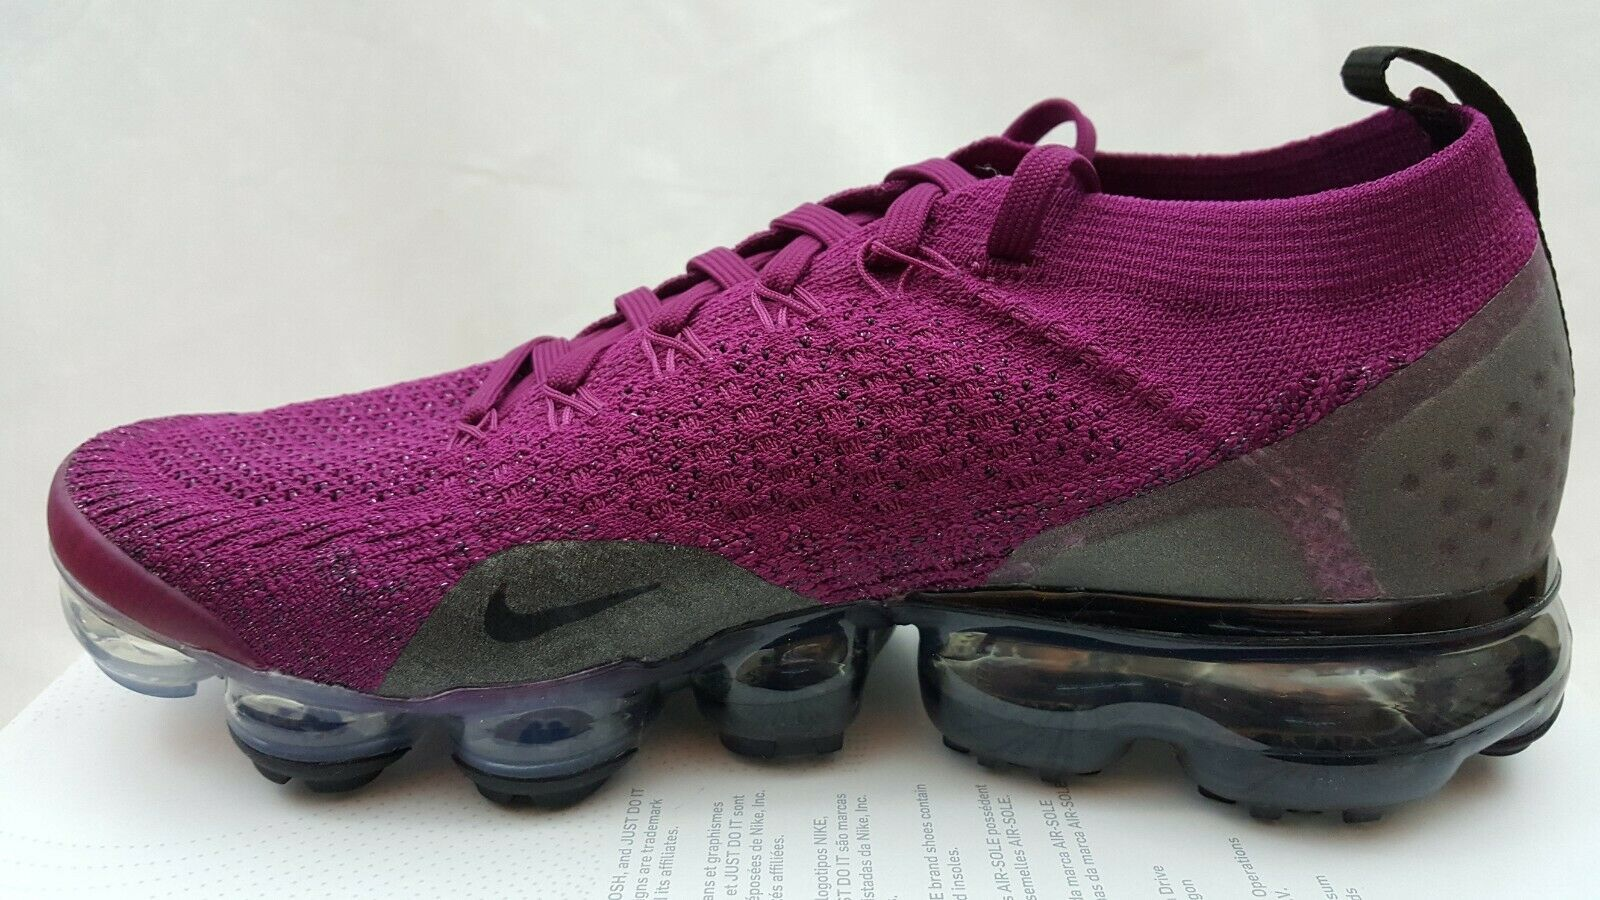 NIKE WOMENS AIR VAPORMAX FLYKNIT 2 Raspberry Red Black Shoes 942843-603 Size 7.5